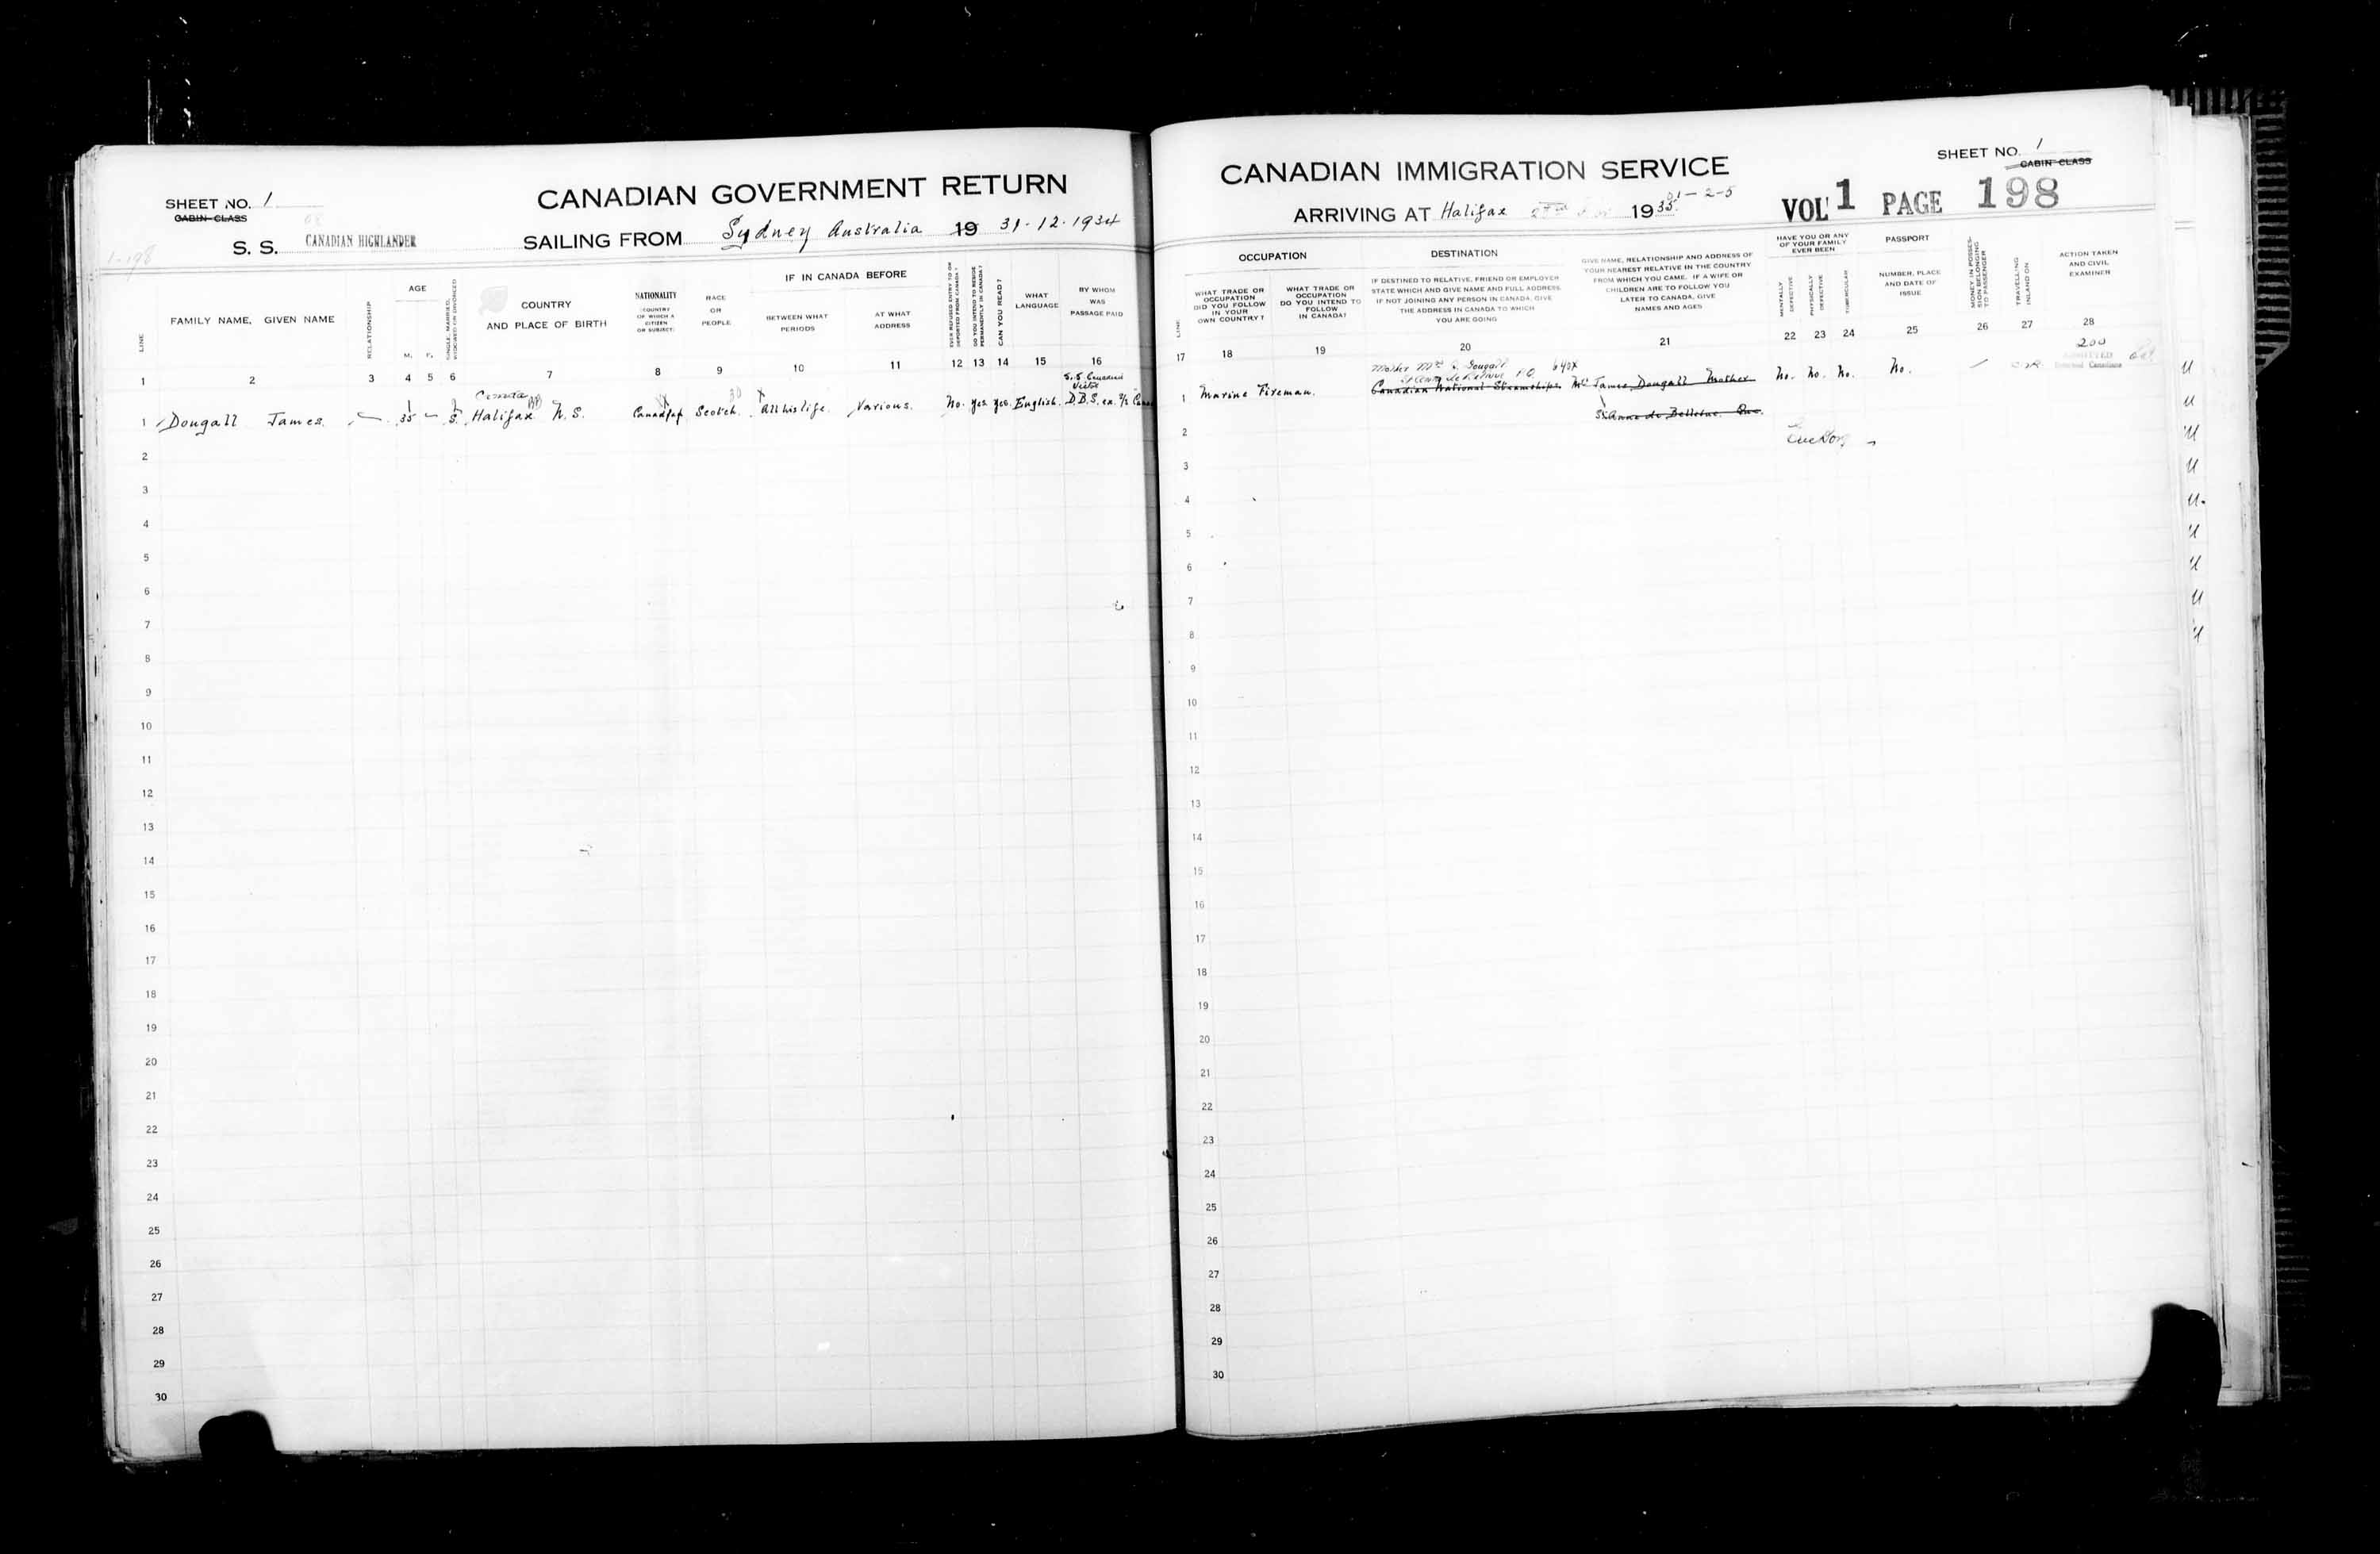 Title: Passenger Lists: Halifax (1925-1935) - Mikan Number: 134853 - Microform: t-14835